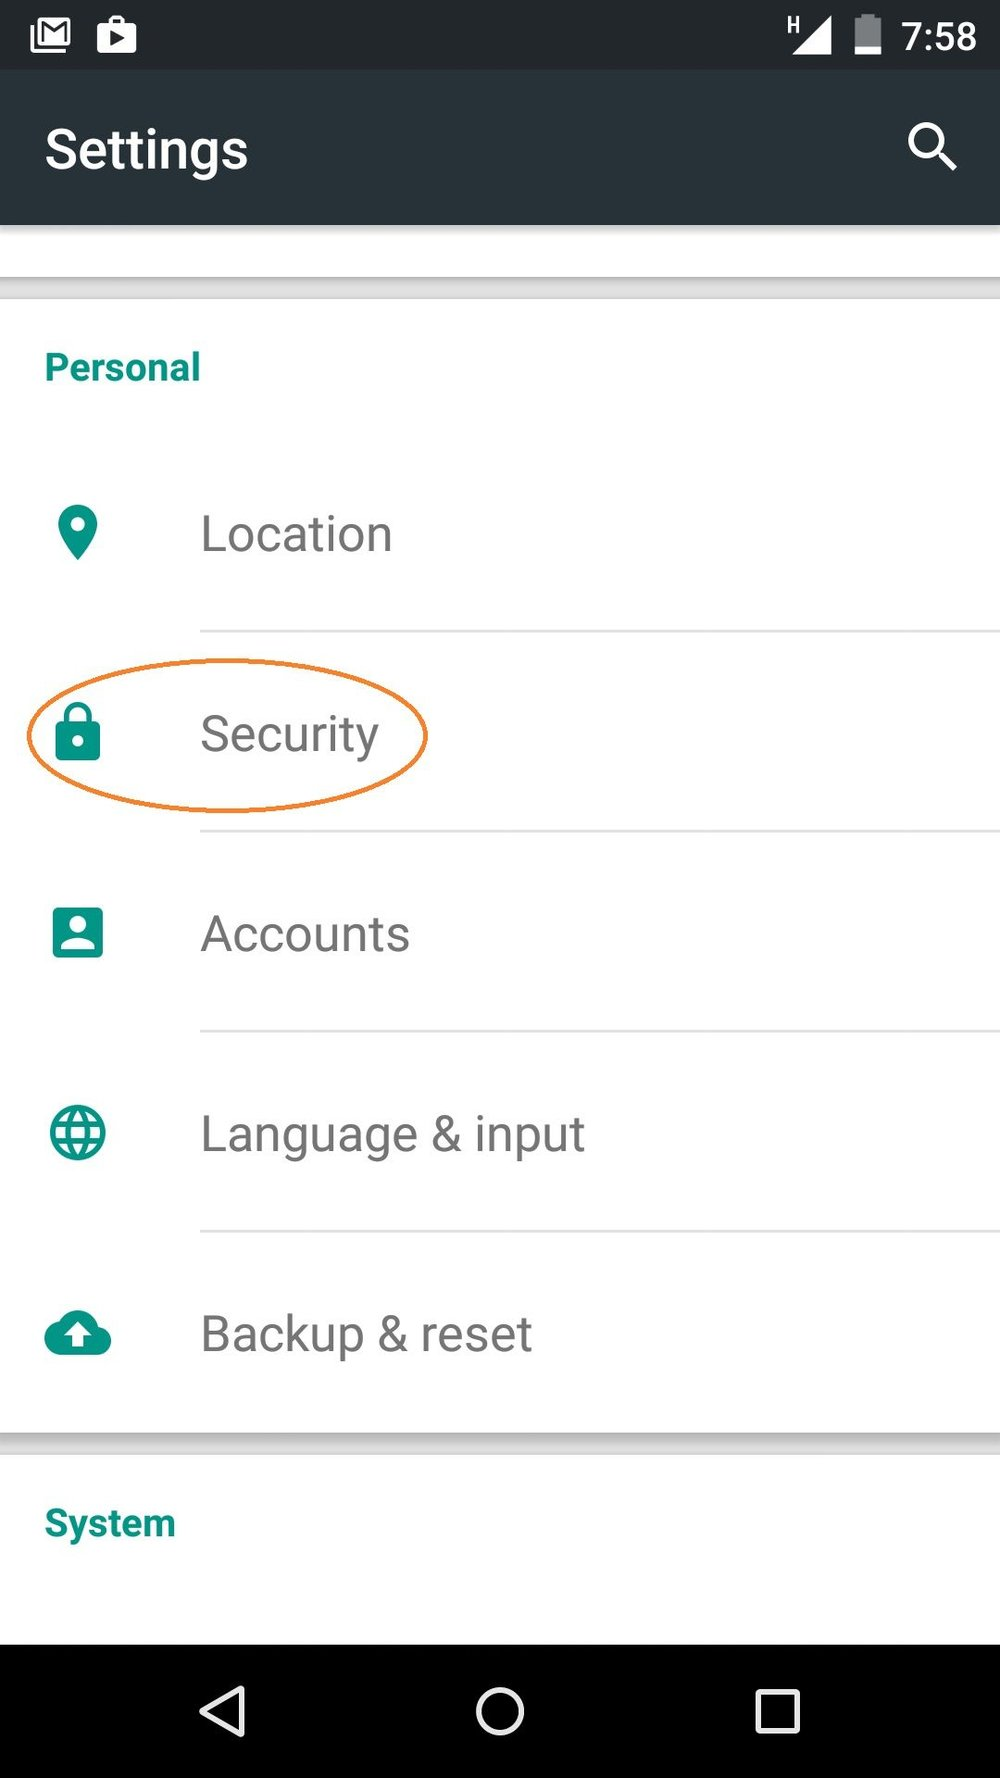 - 1) Open your device's Settings menu. Under Personal, choose Security.